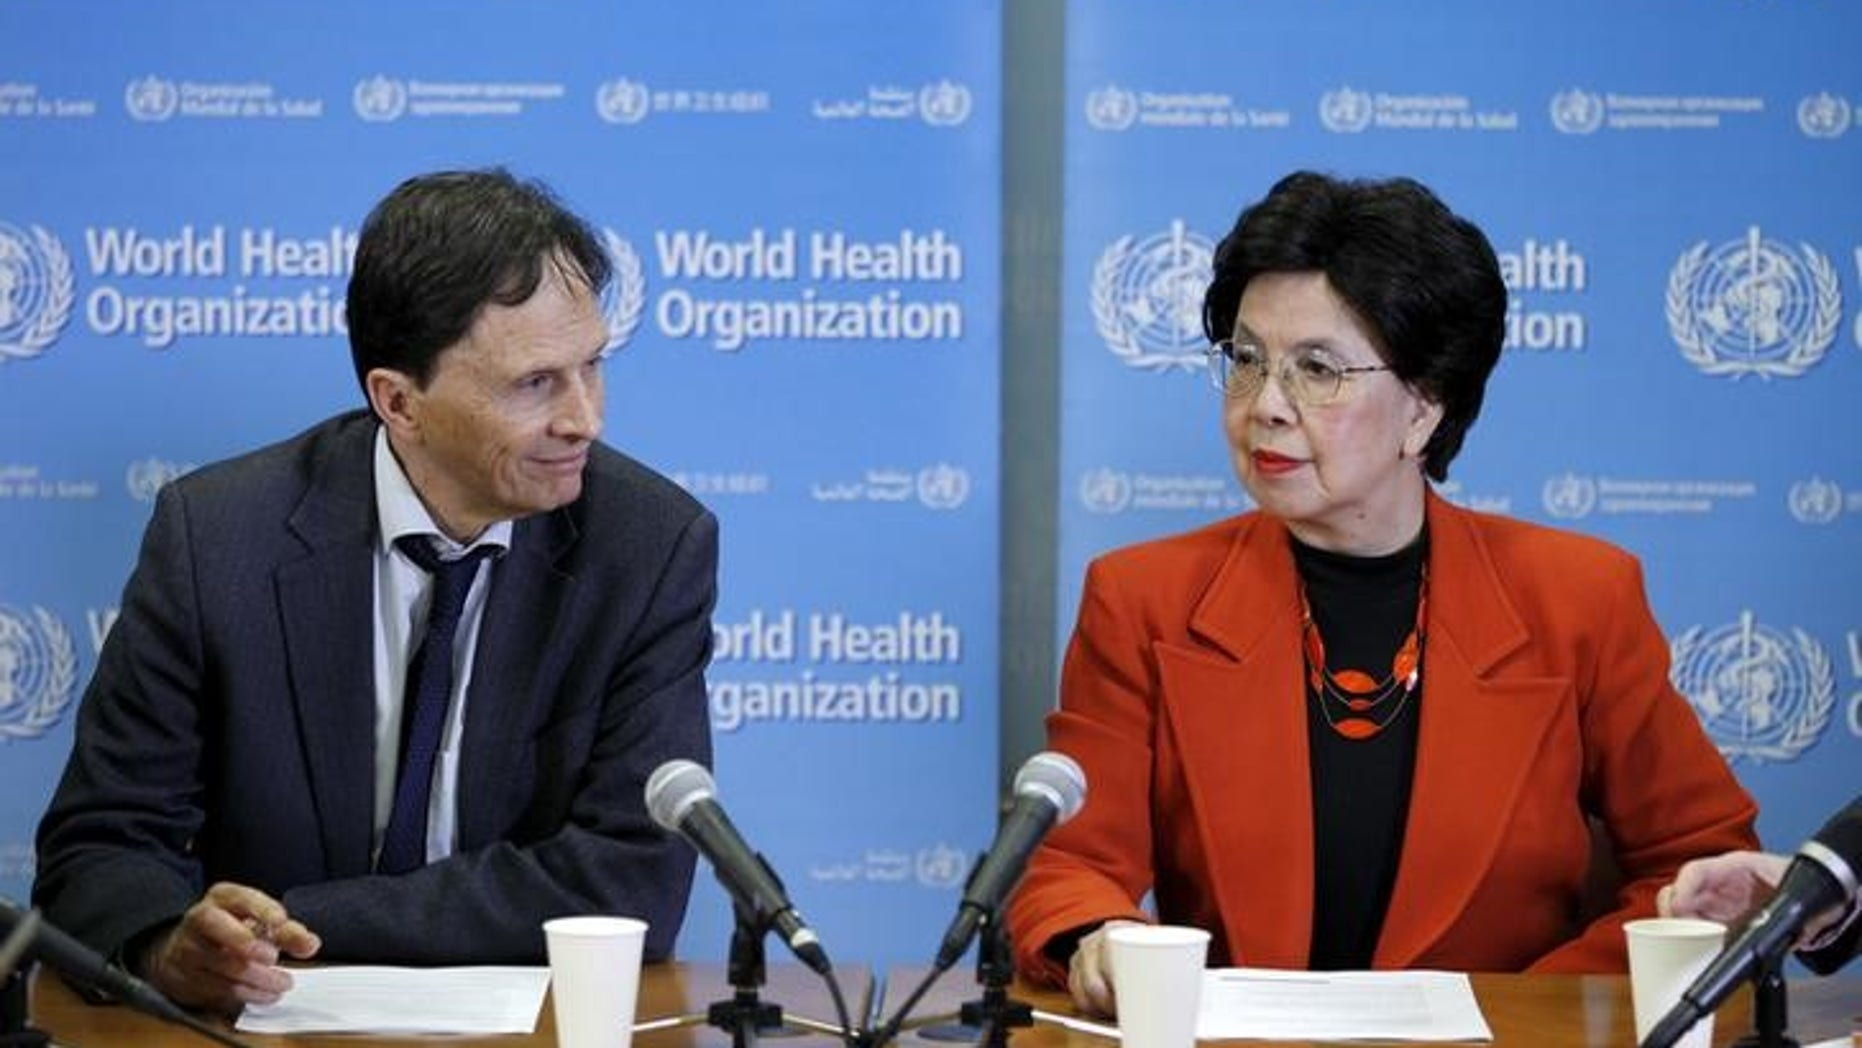 Professor Heymann, Chair of the Emergency Committee, and World Health Organization Director-General Chan hold a news conference on the Zika virus in Geneva